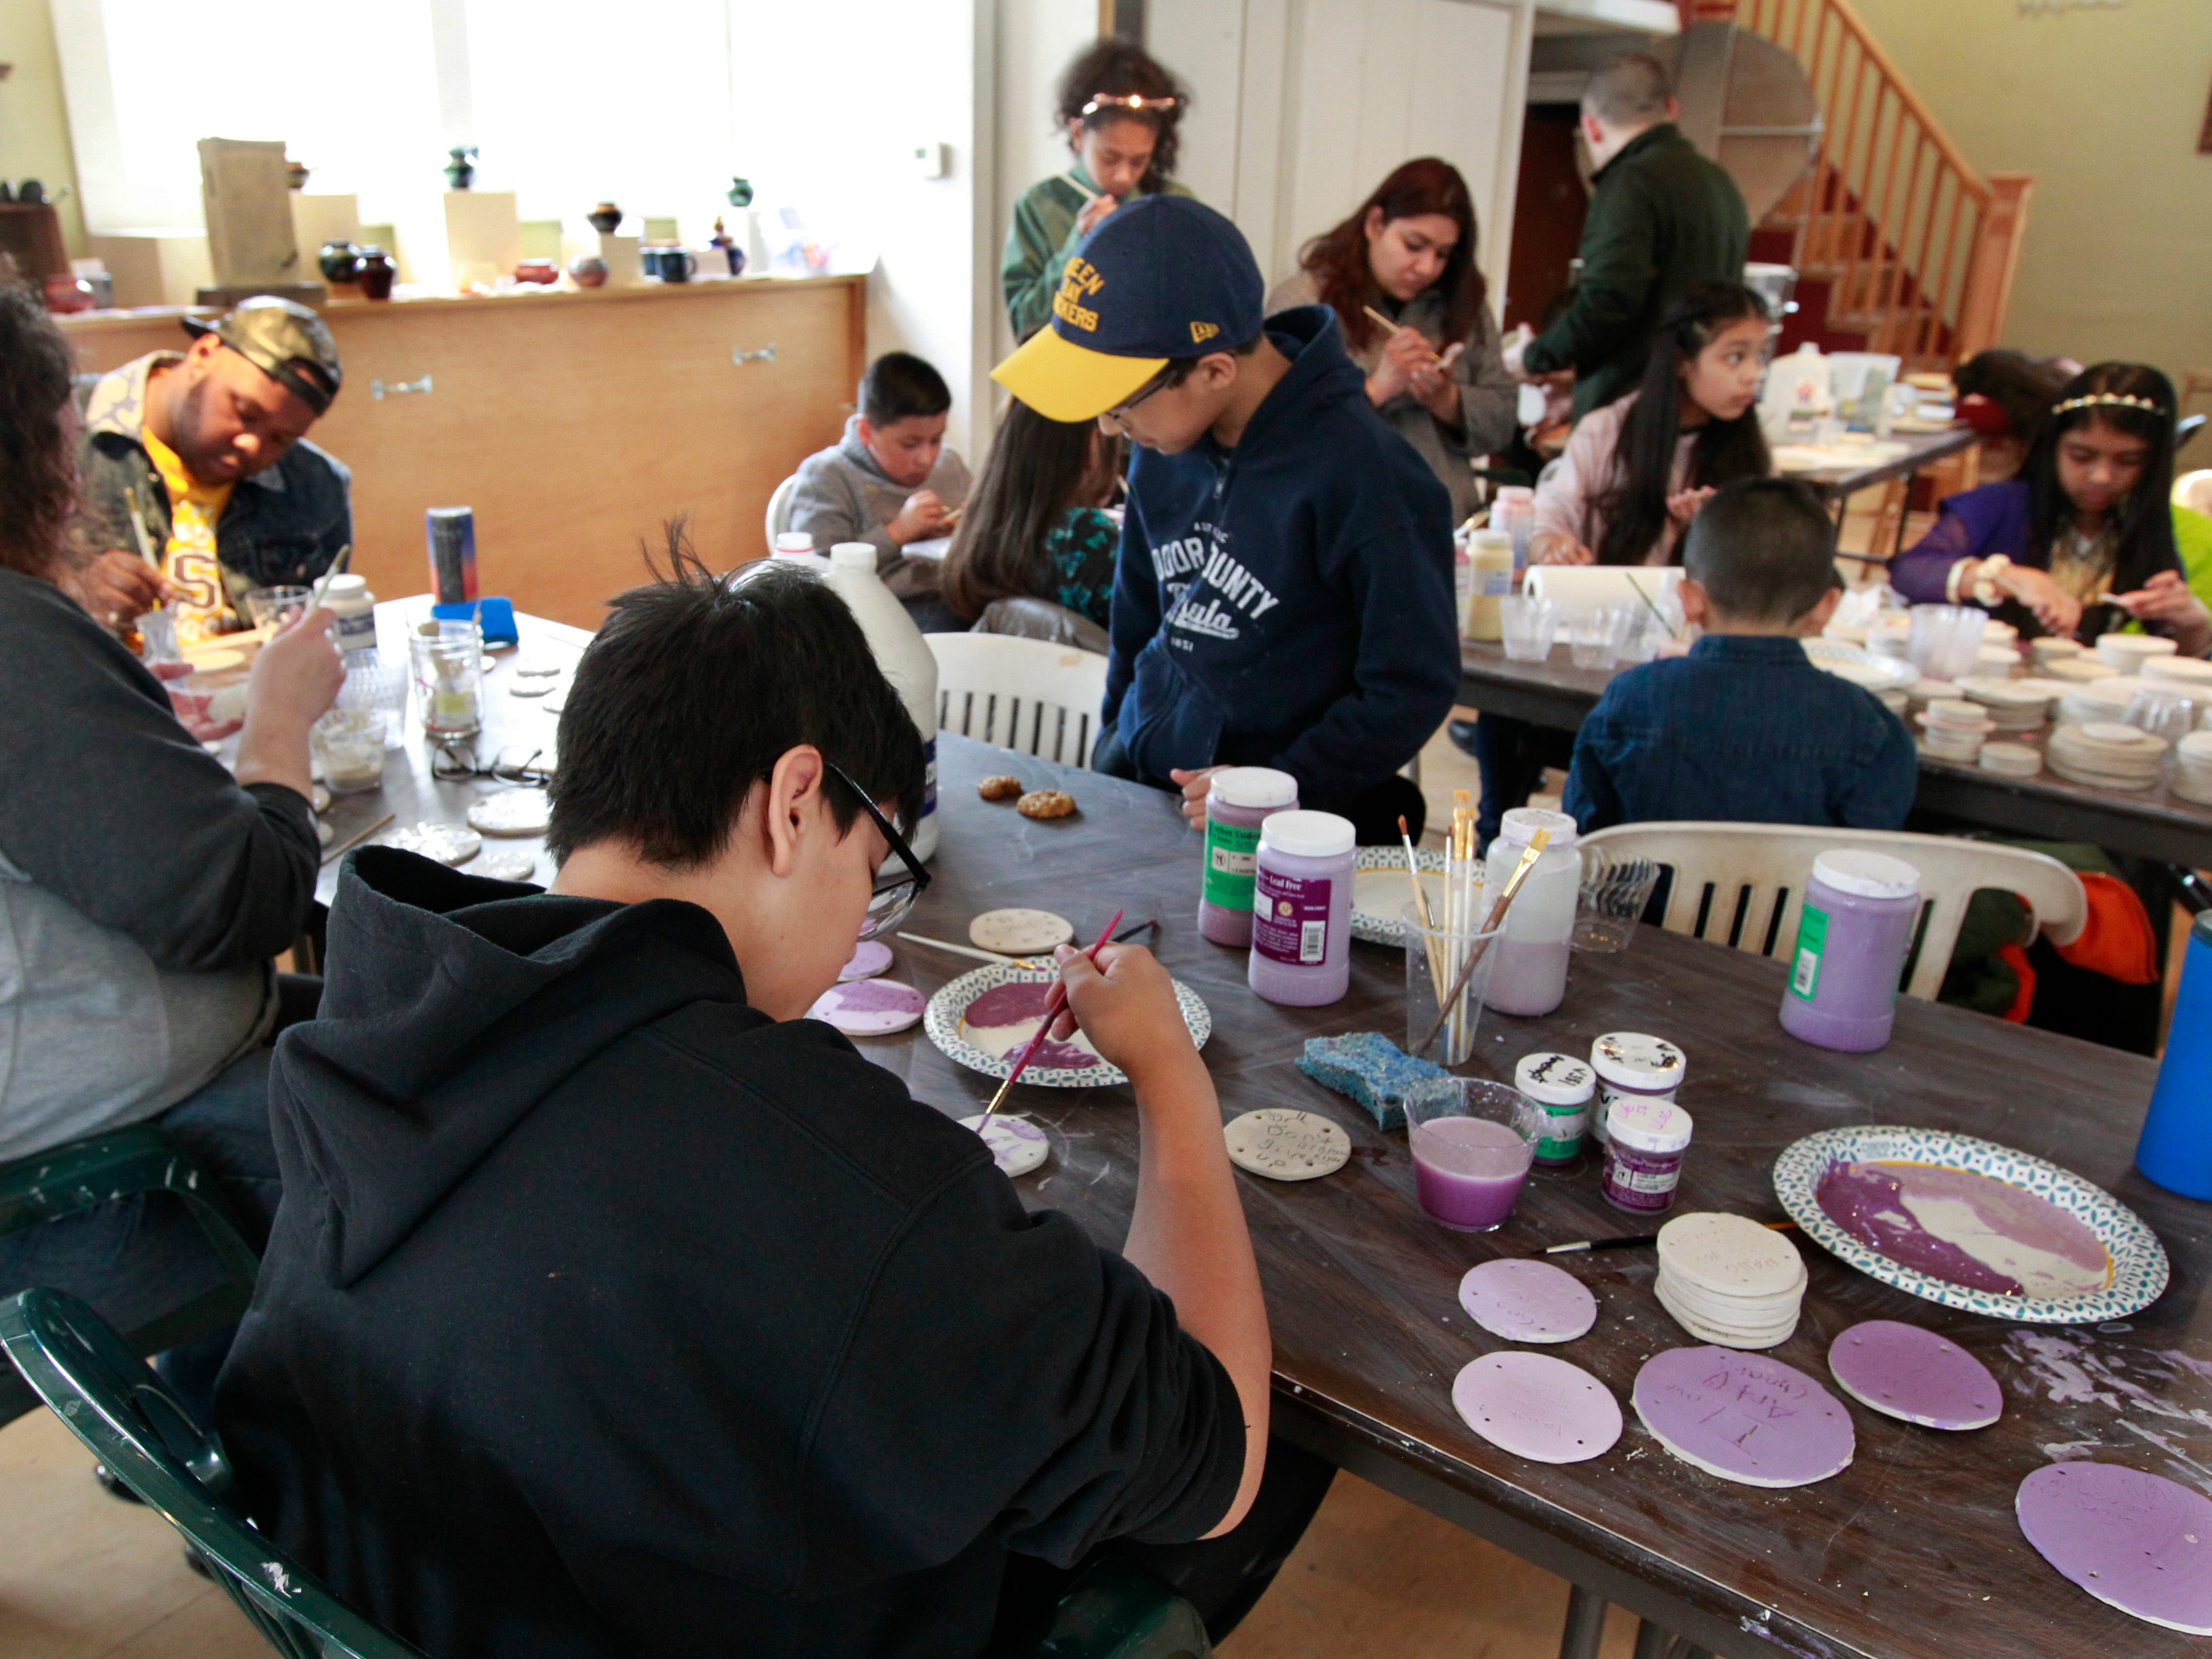 The art studio of Lori Gramling is filled with students and adults on a Saturday   working on a community art project.